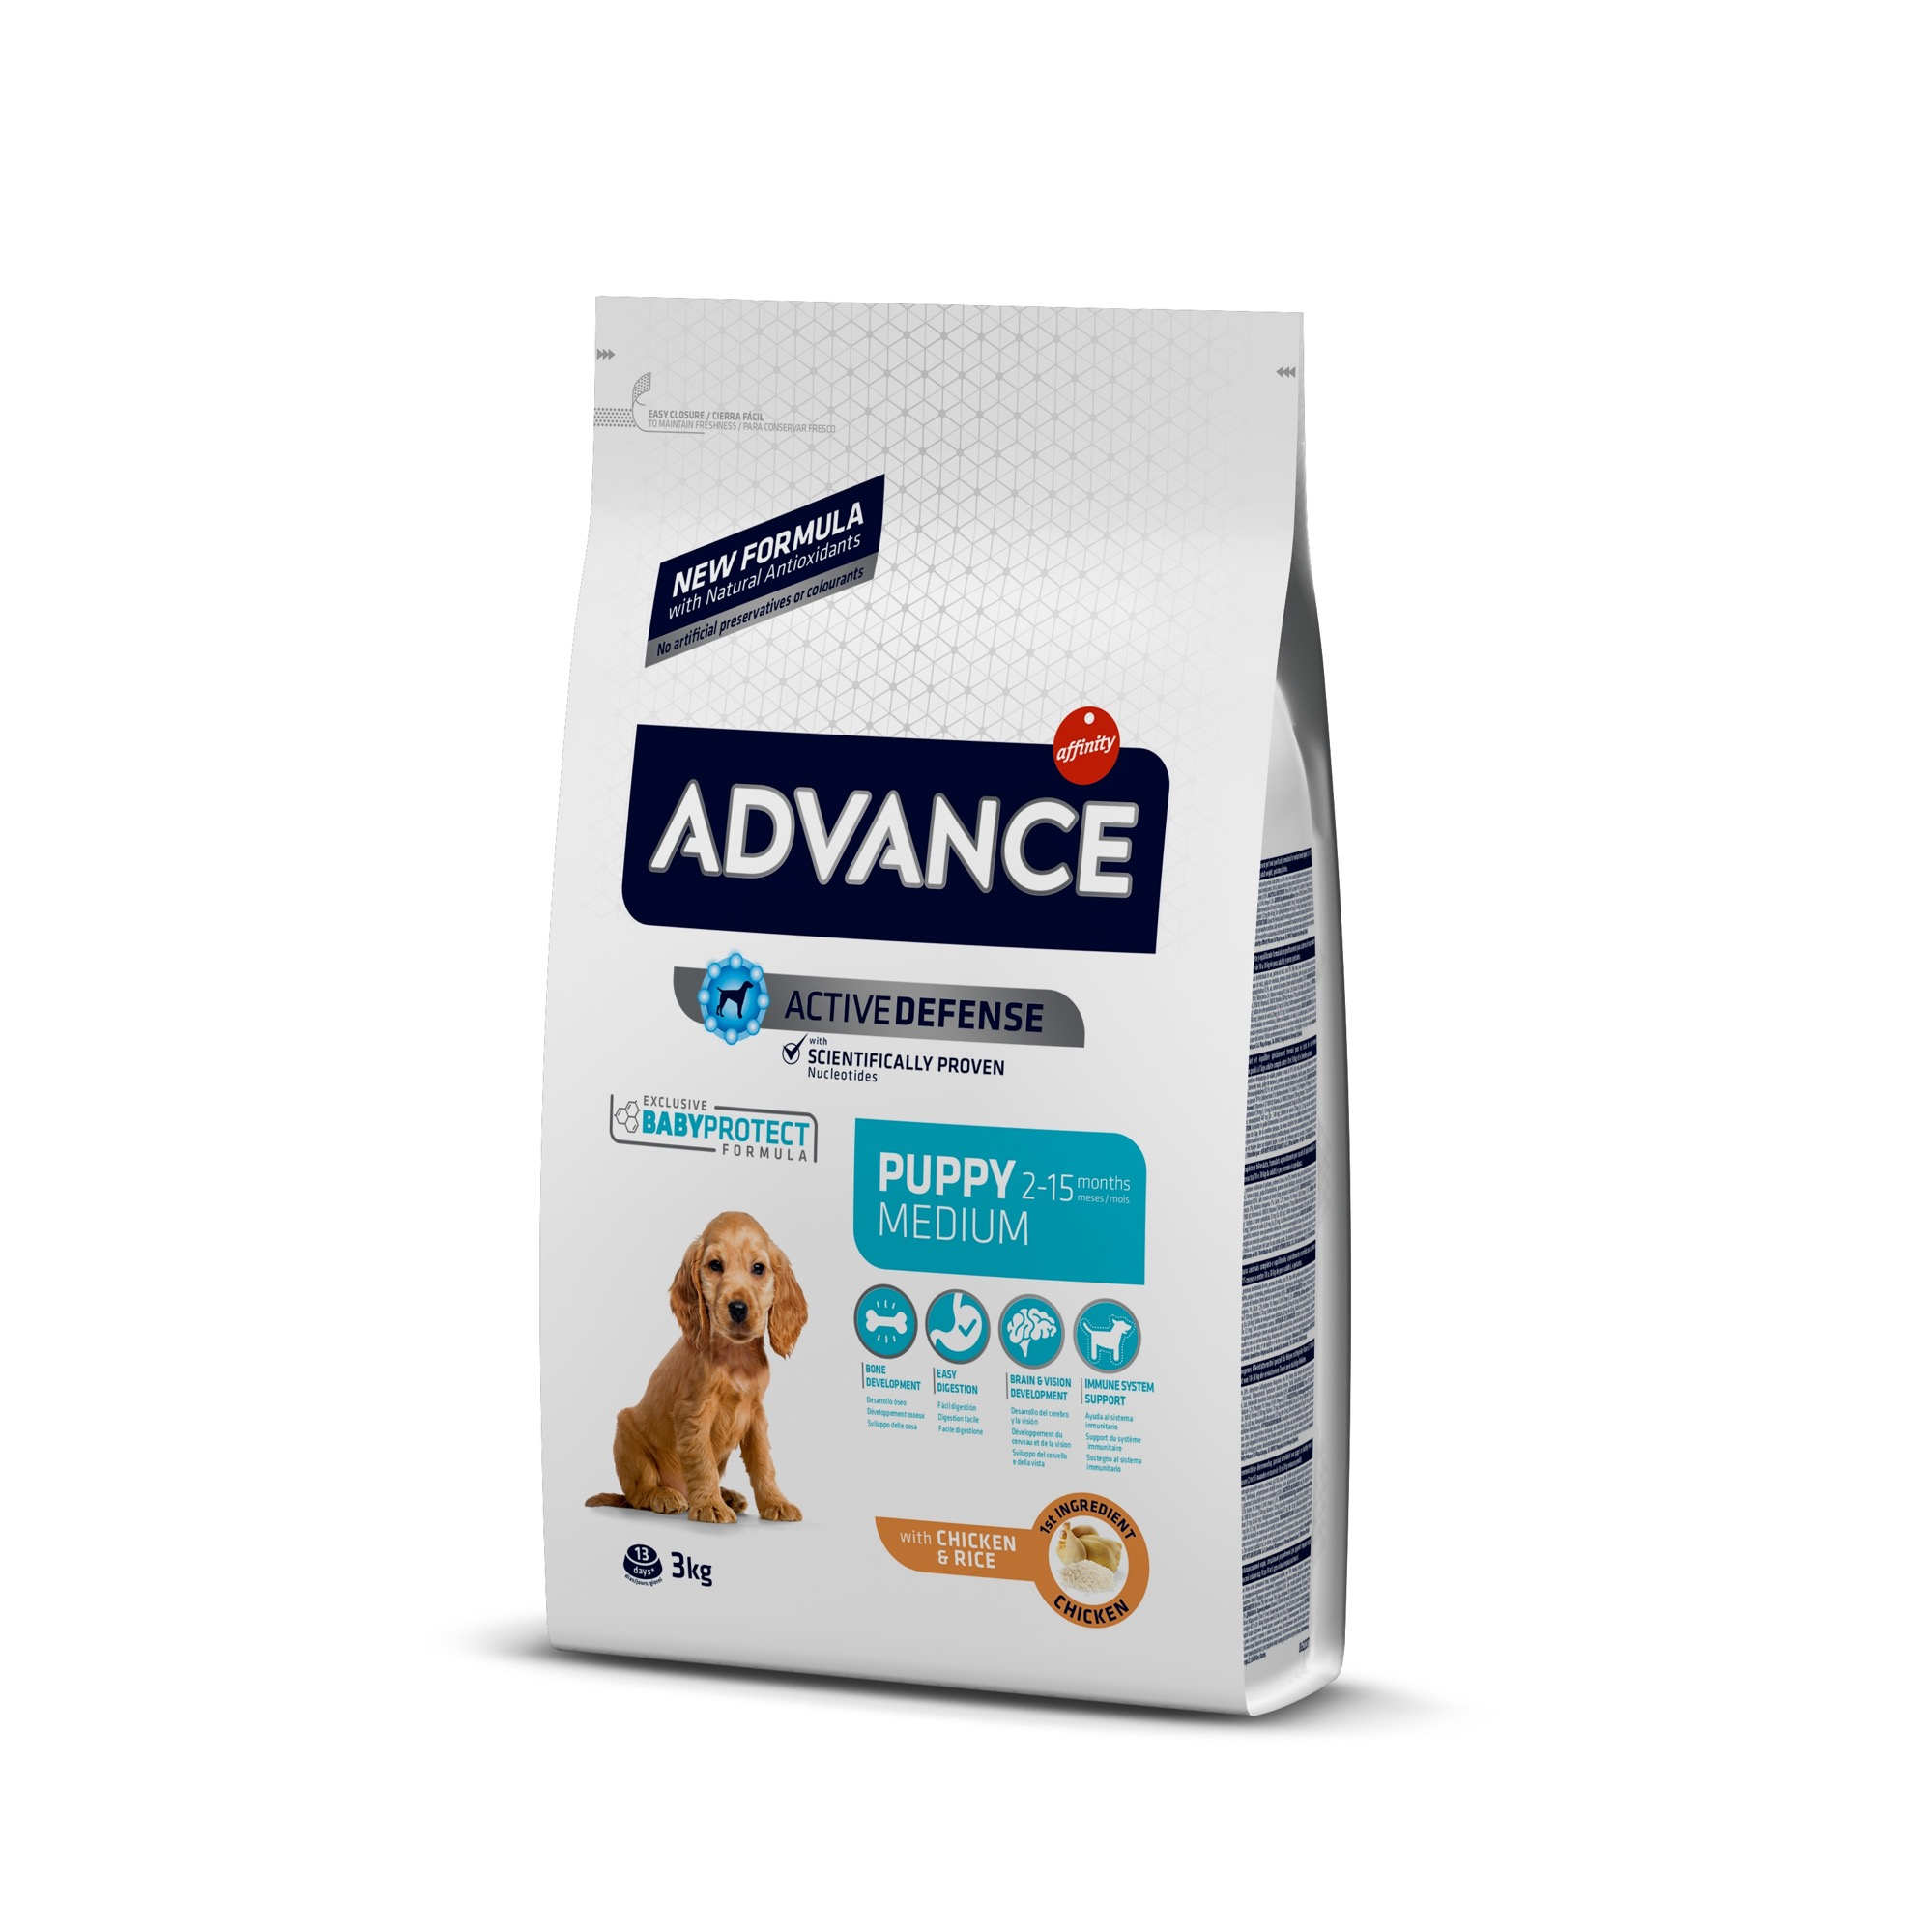 Šunų maistas Advance puppy protection medium 3kg.